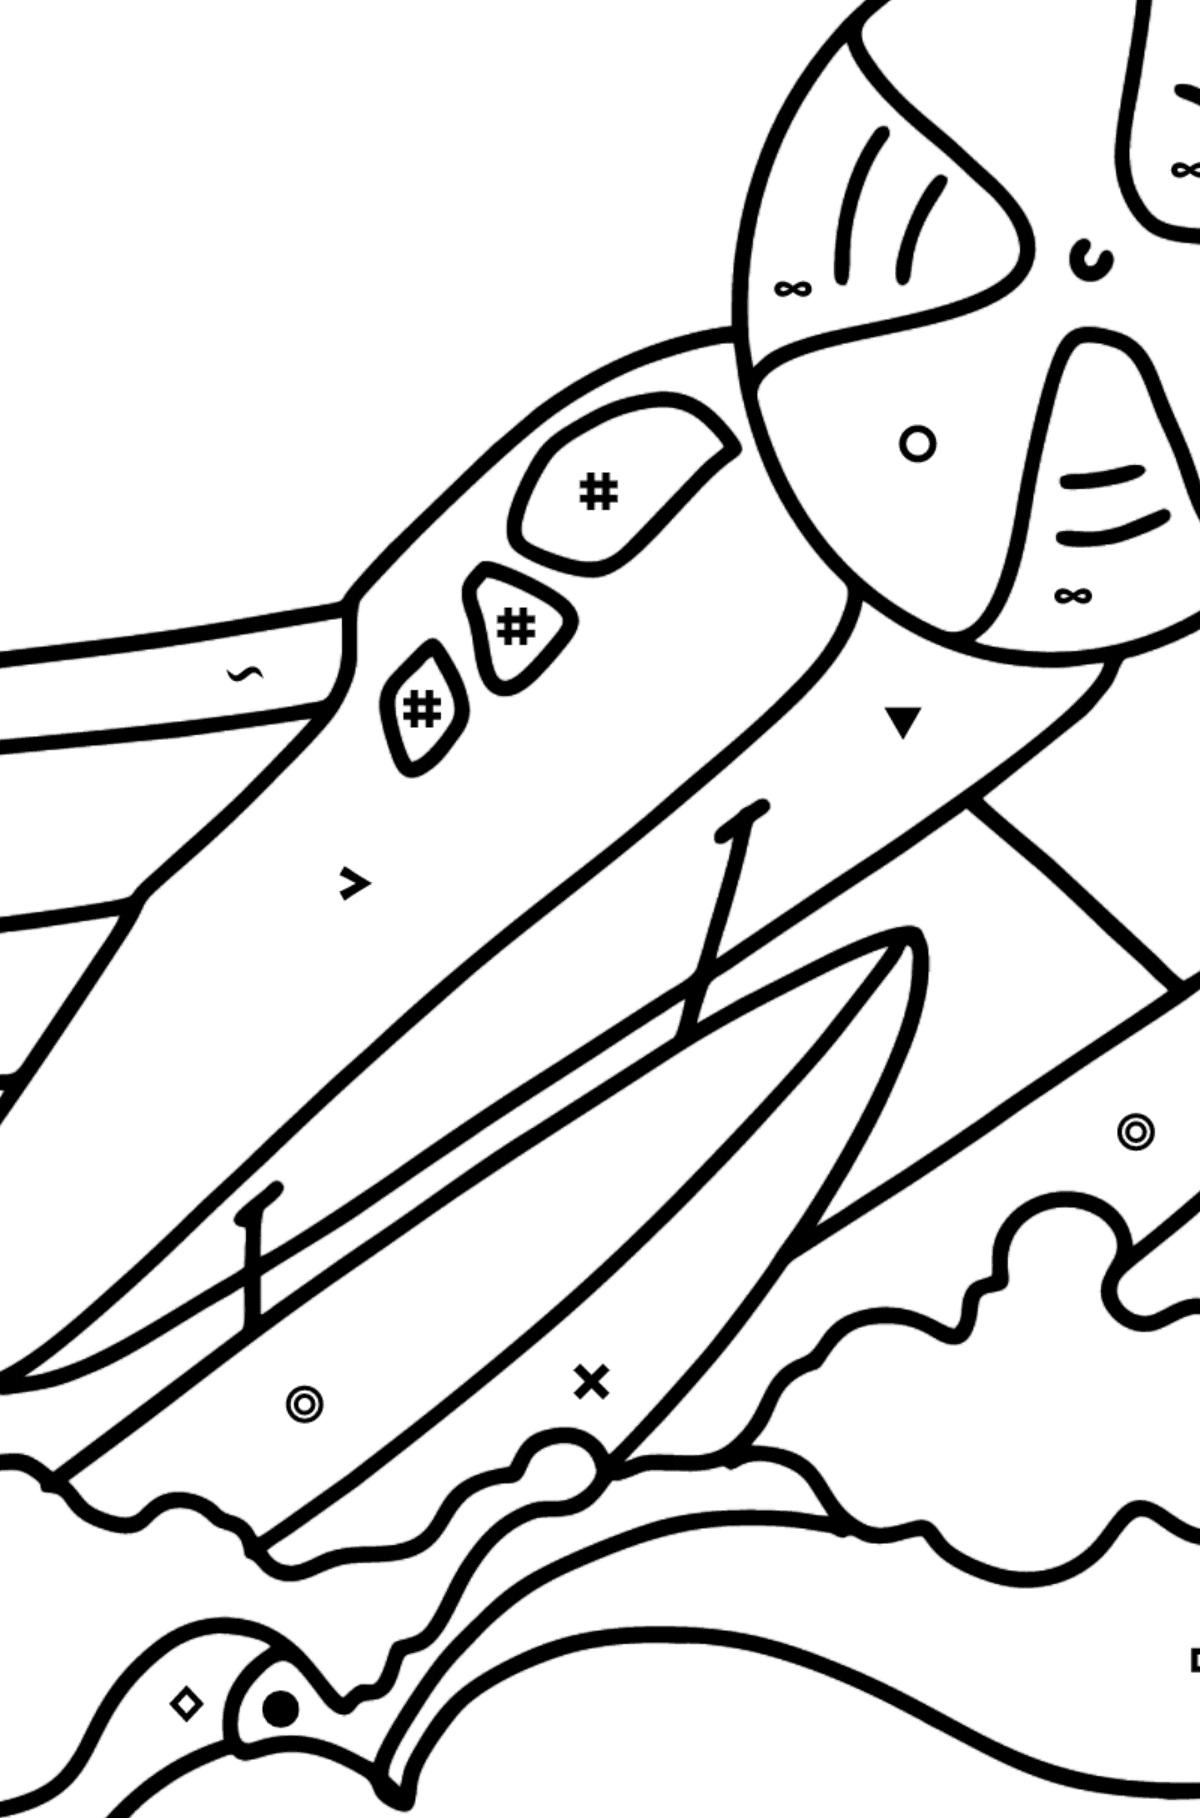 Amphibious Airplane coloring page - Coloring by Symbols and Geometric Shapes for Kids